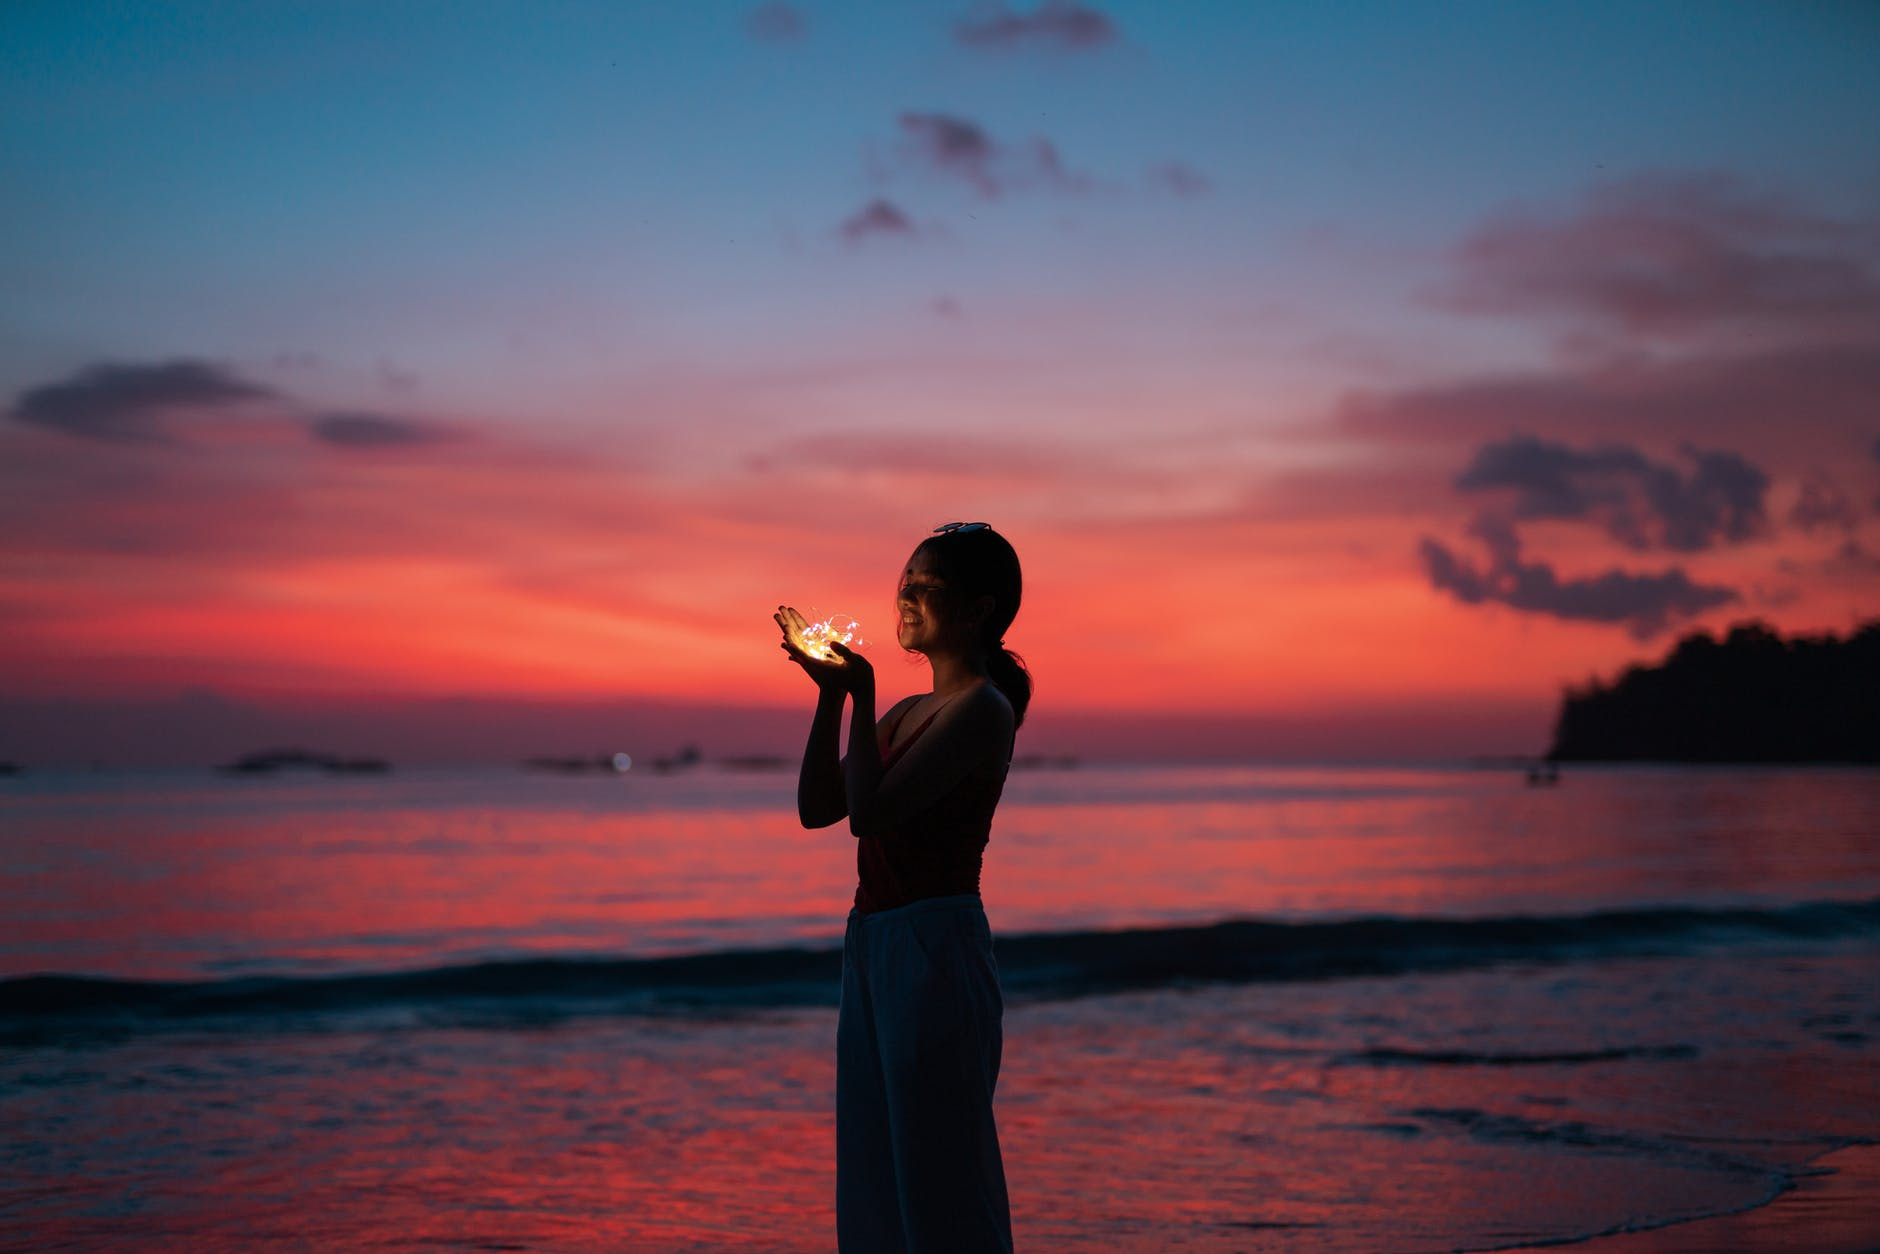 woman holding lights on seashore at sunset